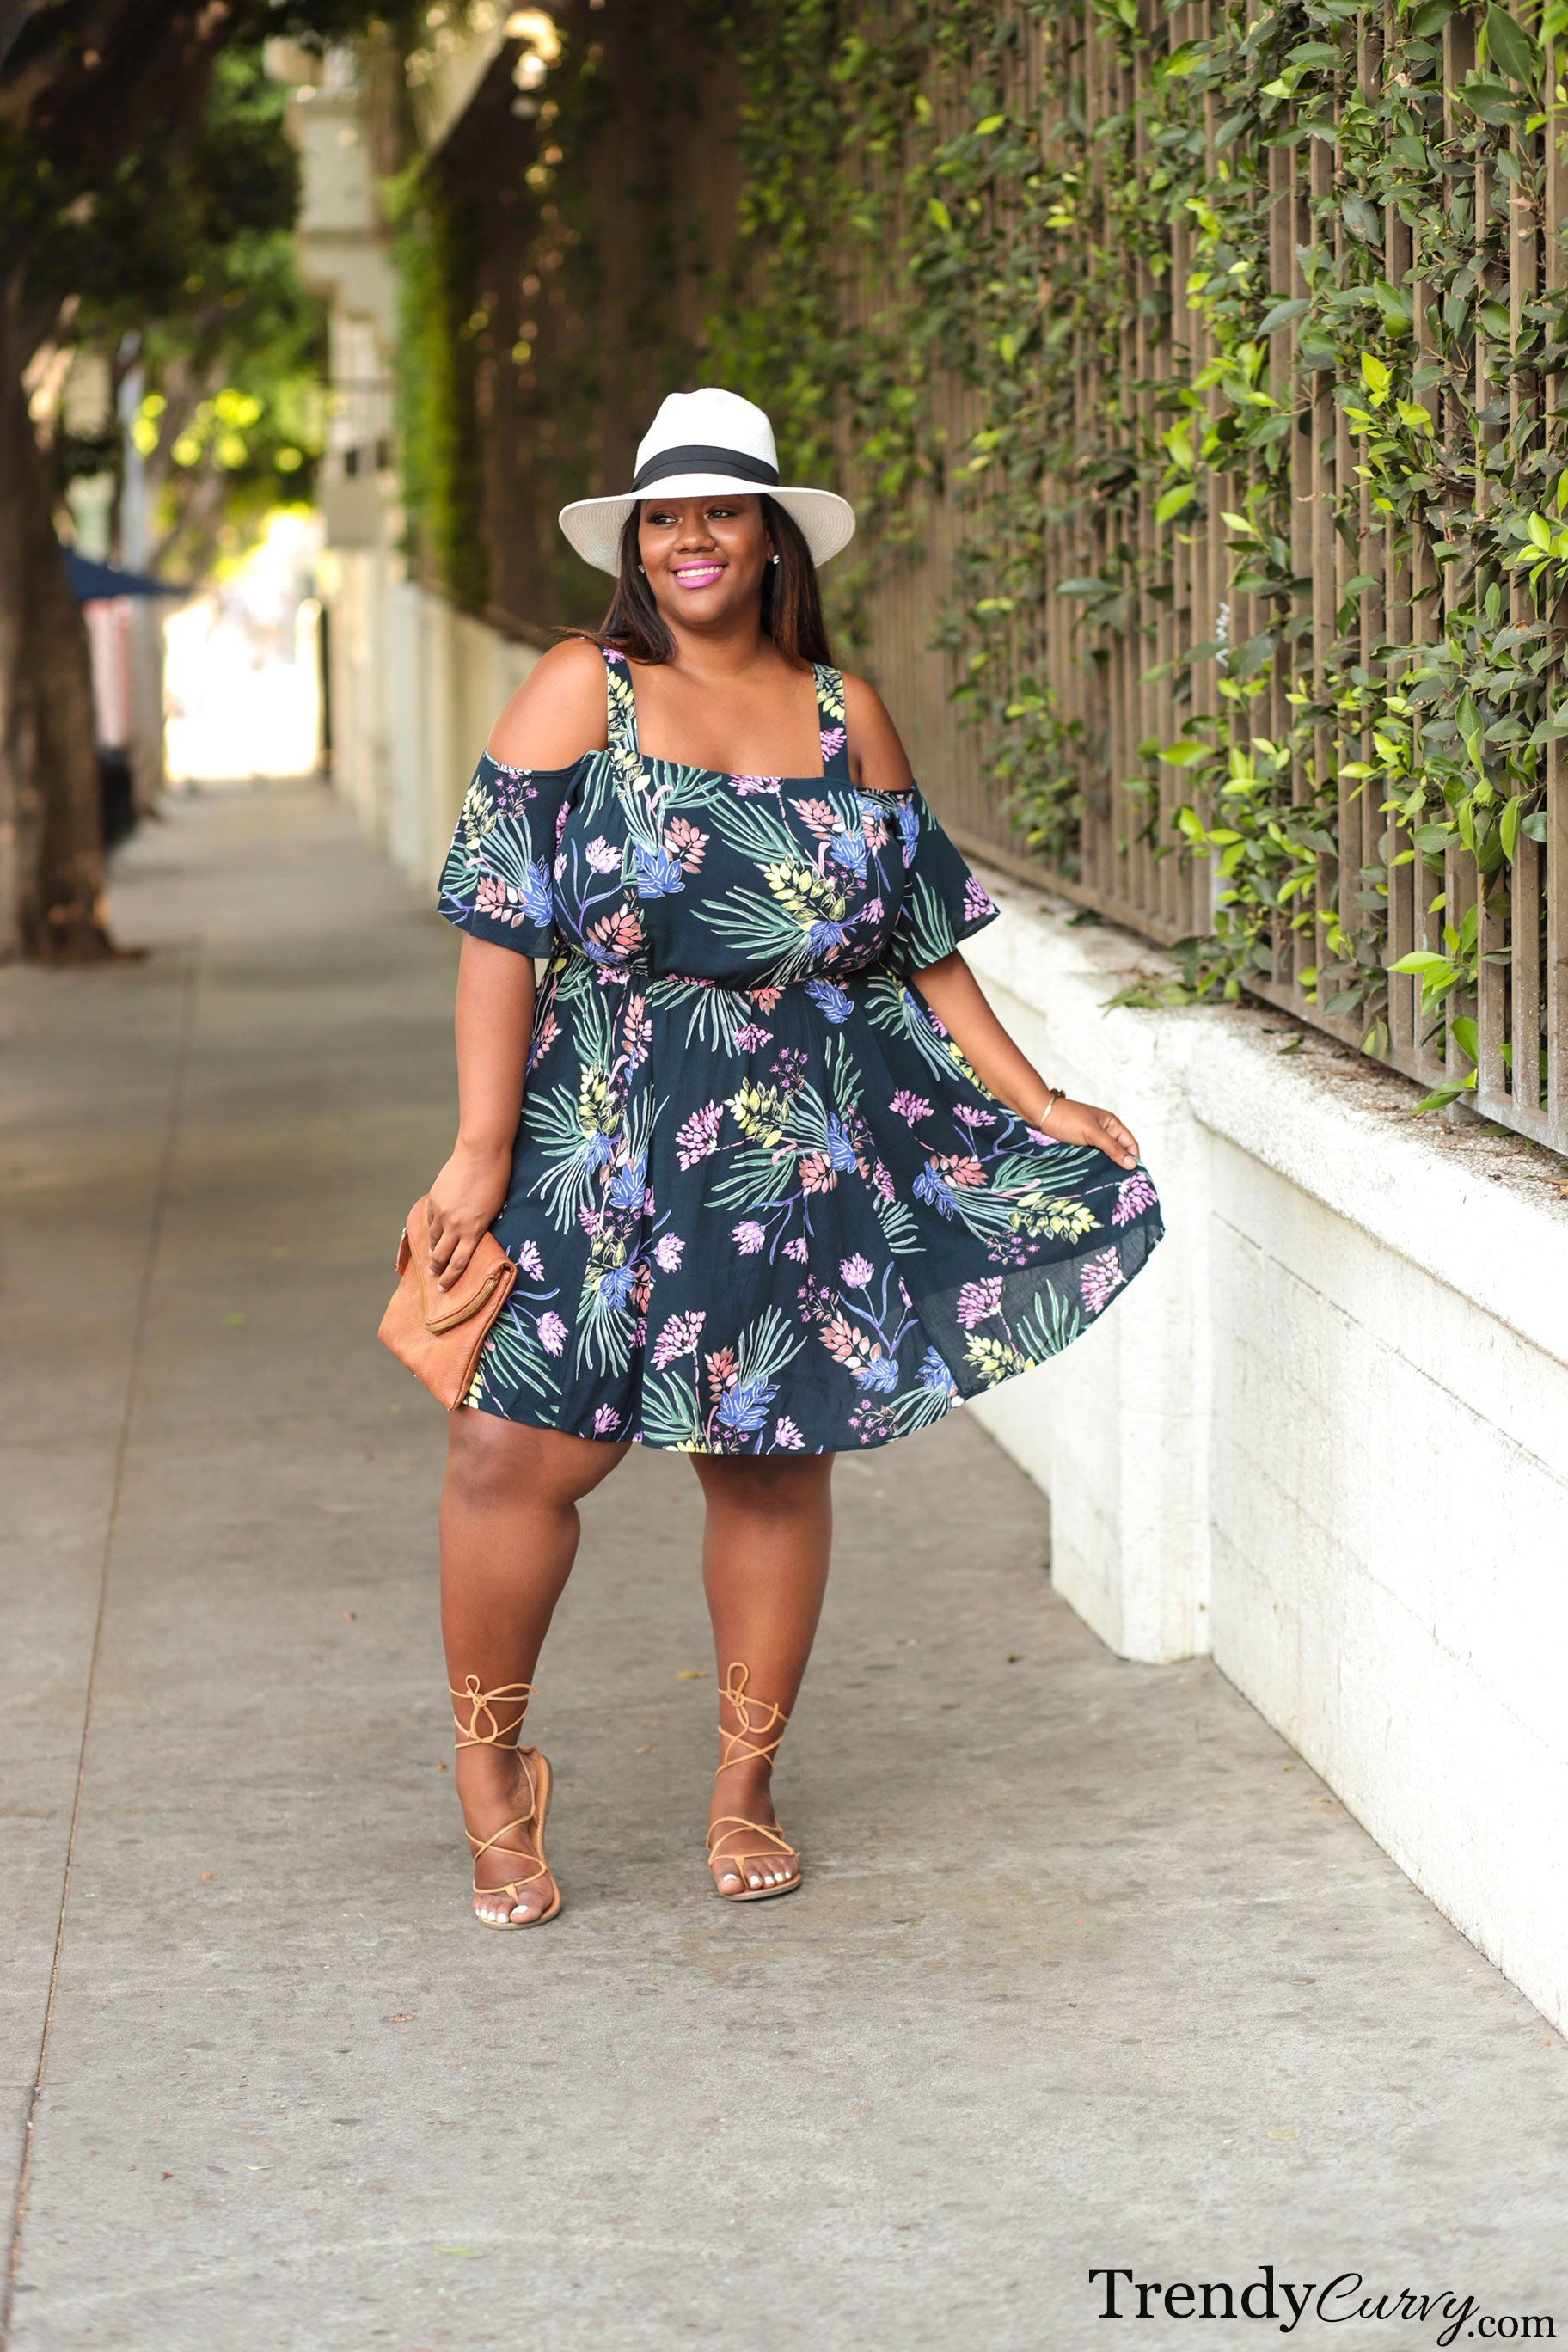 Summer In The City Trendy Curvy Plus Size Summer Outfit Plus Size Summer Dresses Plus Size Summer Fashion [ 2736 x 1824 Pixel ]